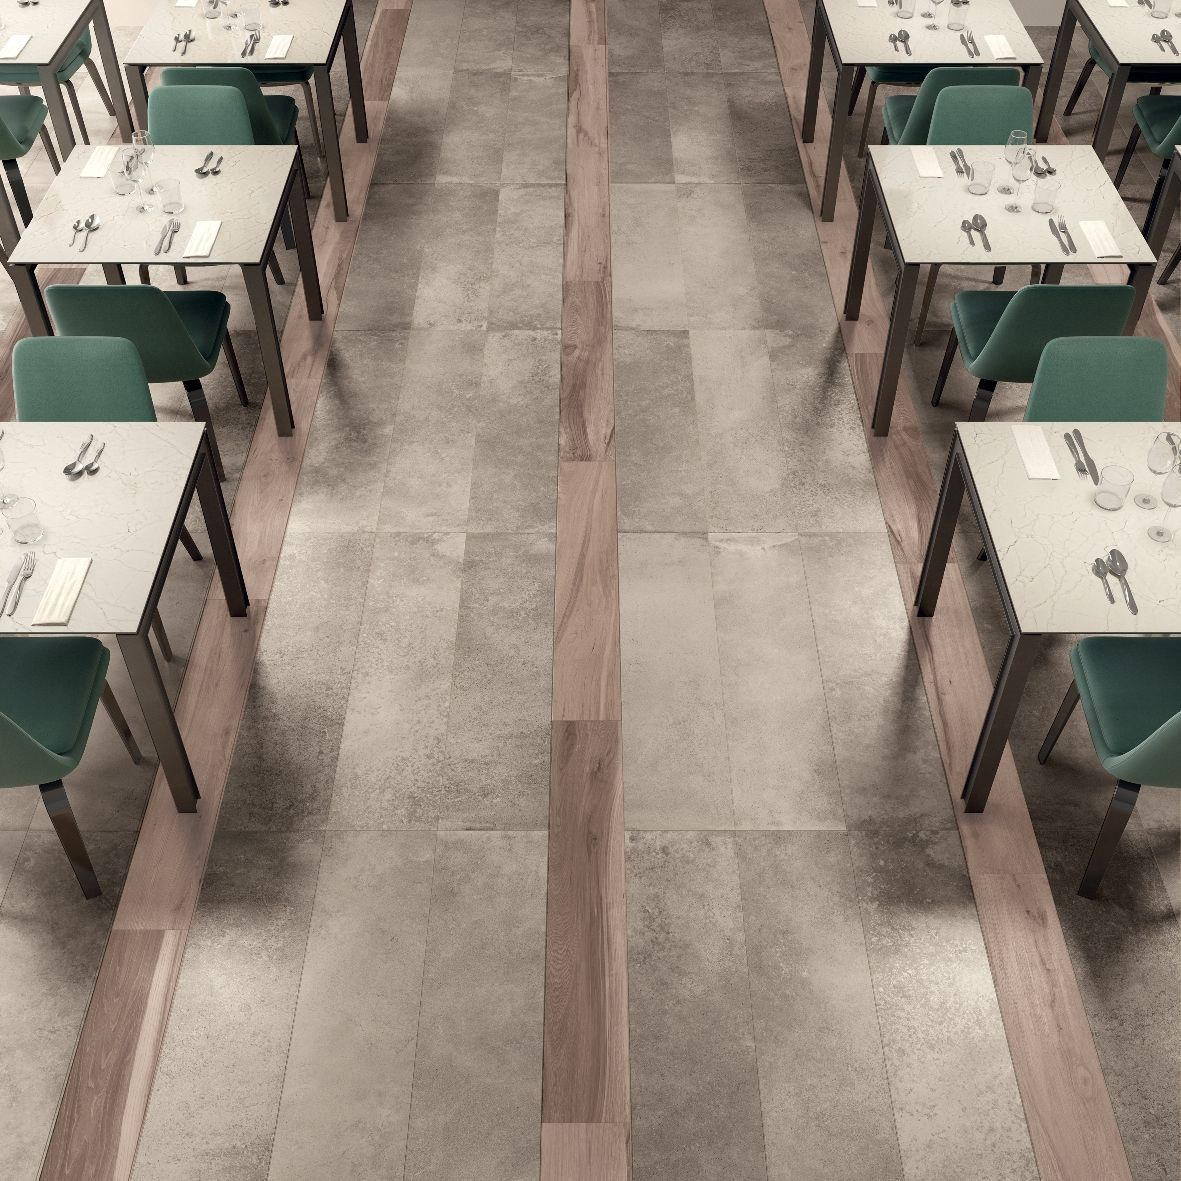 Tile For Restaurant Kitchen Floors Floor Crossover Abkemozioni Unika Ecru Soleras Avana Ceramic